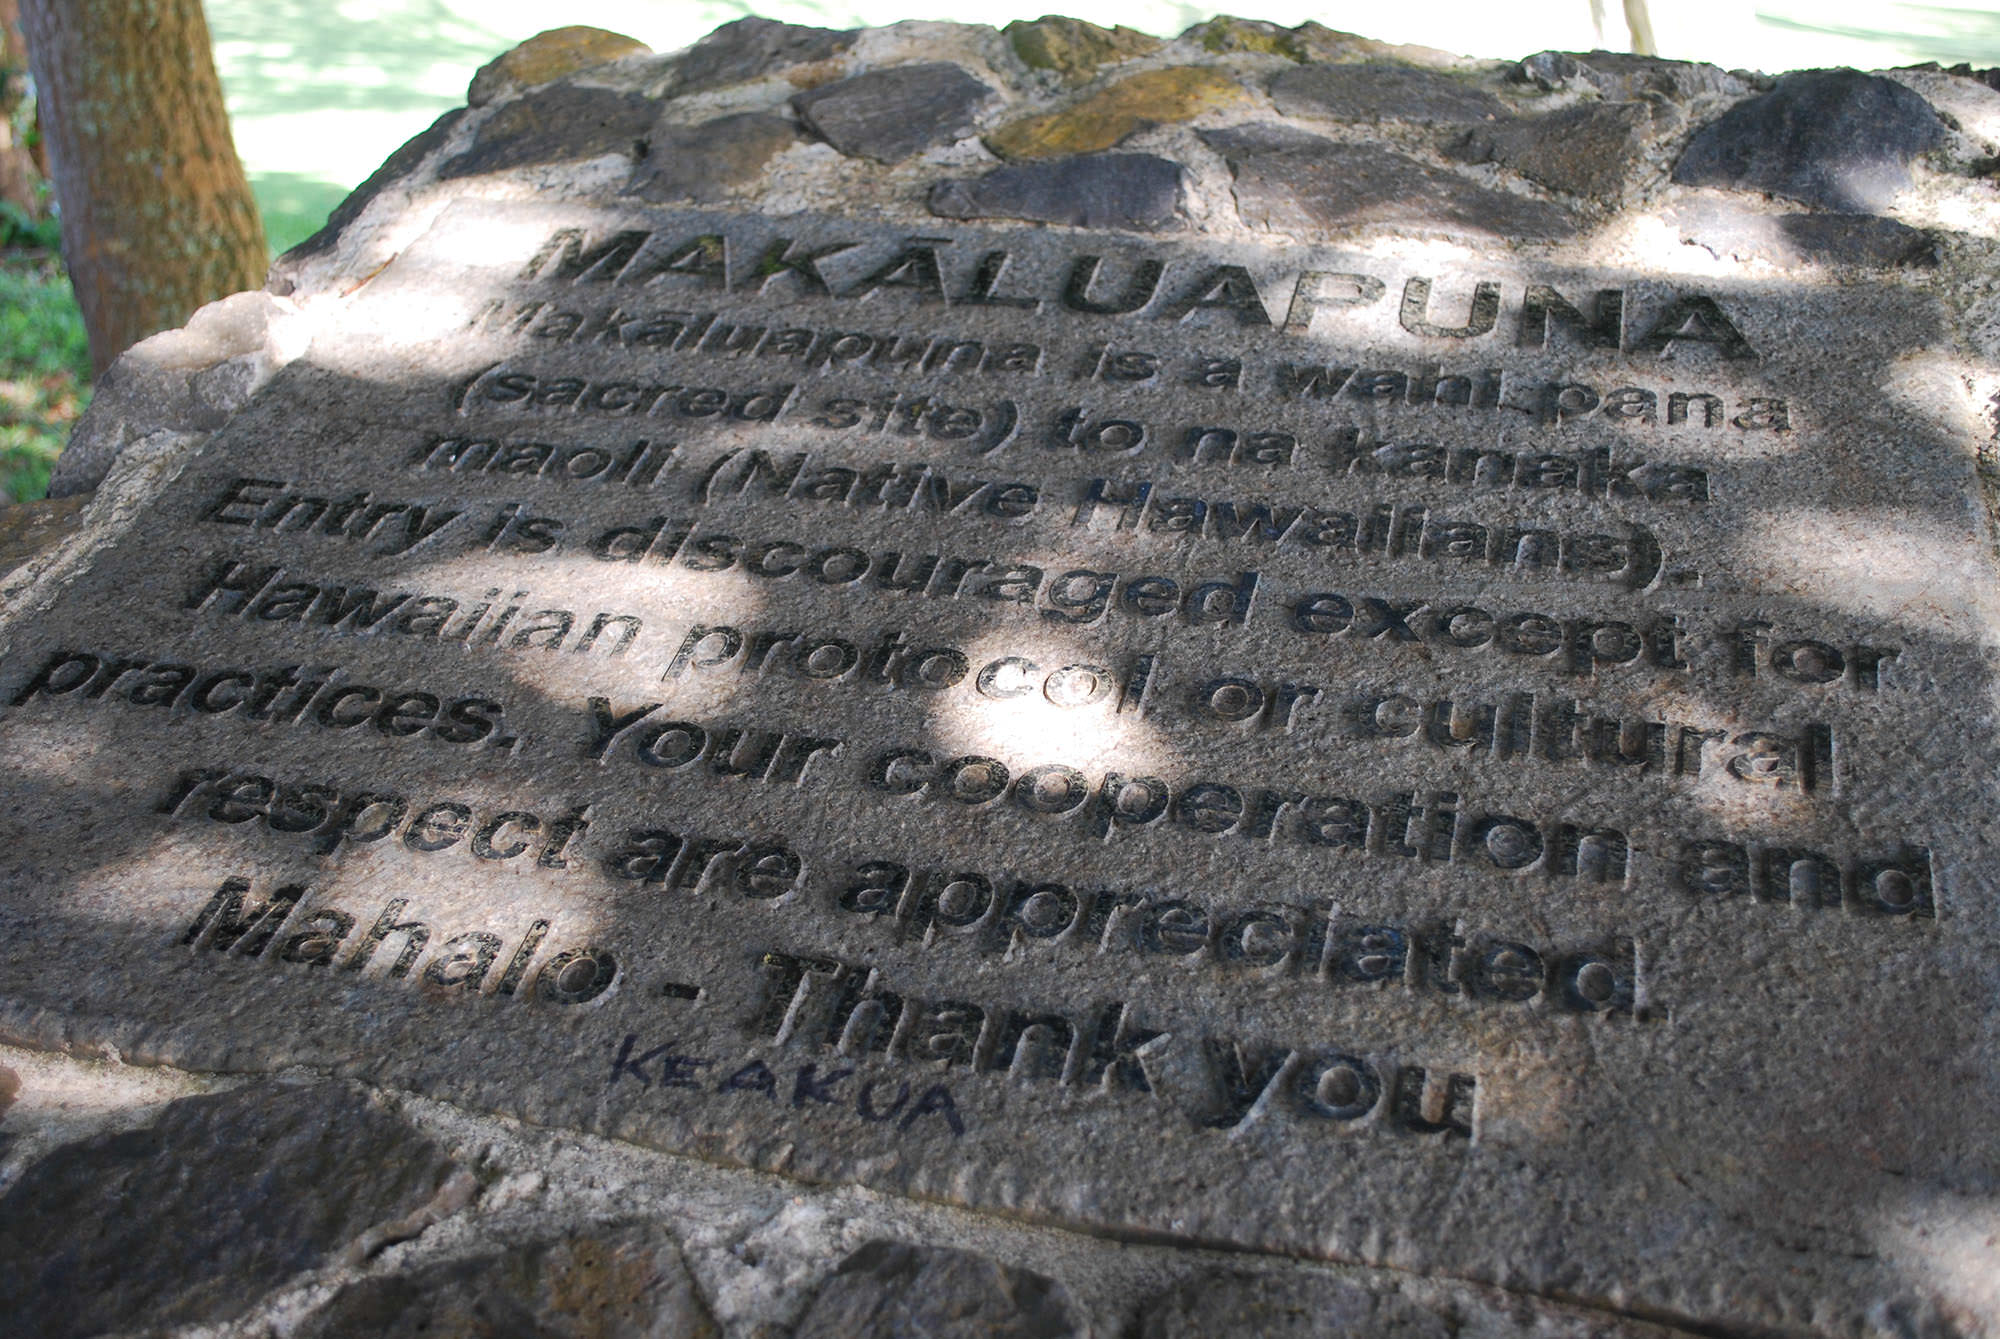 Fig. 3 Makāluapuna sacred site, Maui, stone marker with plaque, note addition of KEAKUA in permanent marker, July 2015. Photo: ©Sally Promey